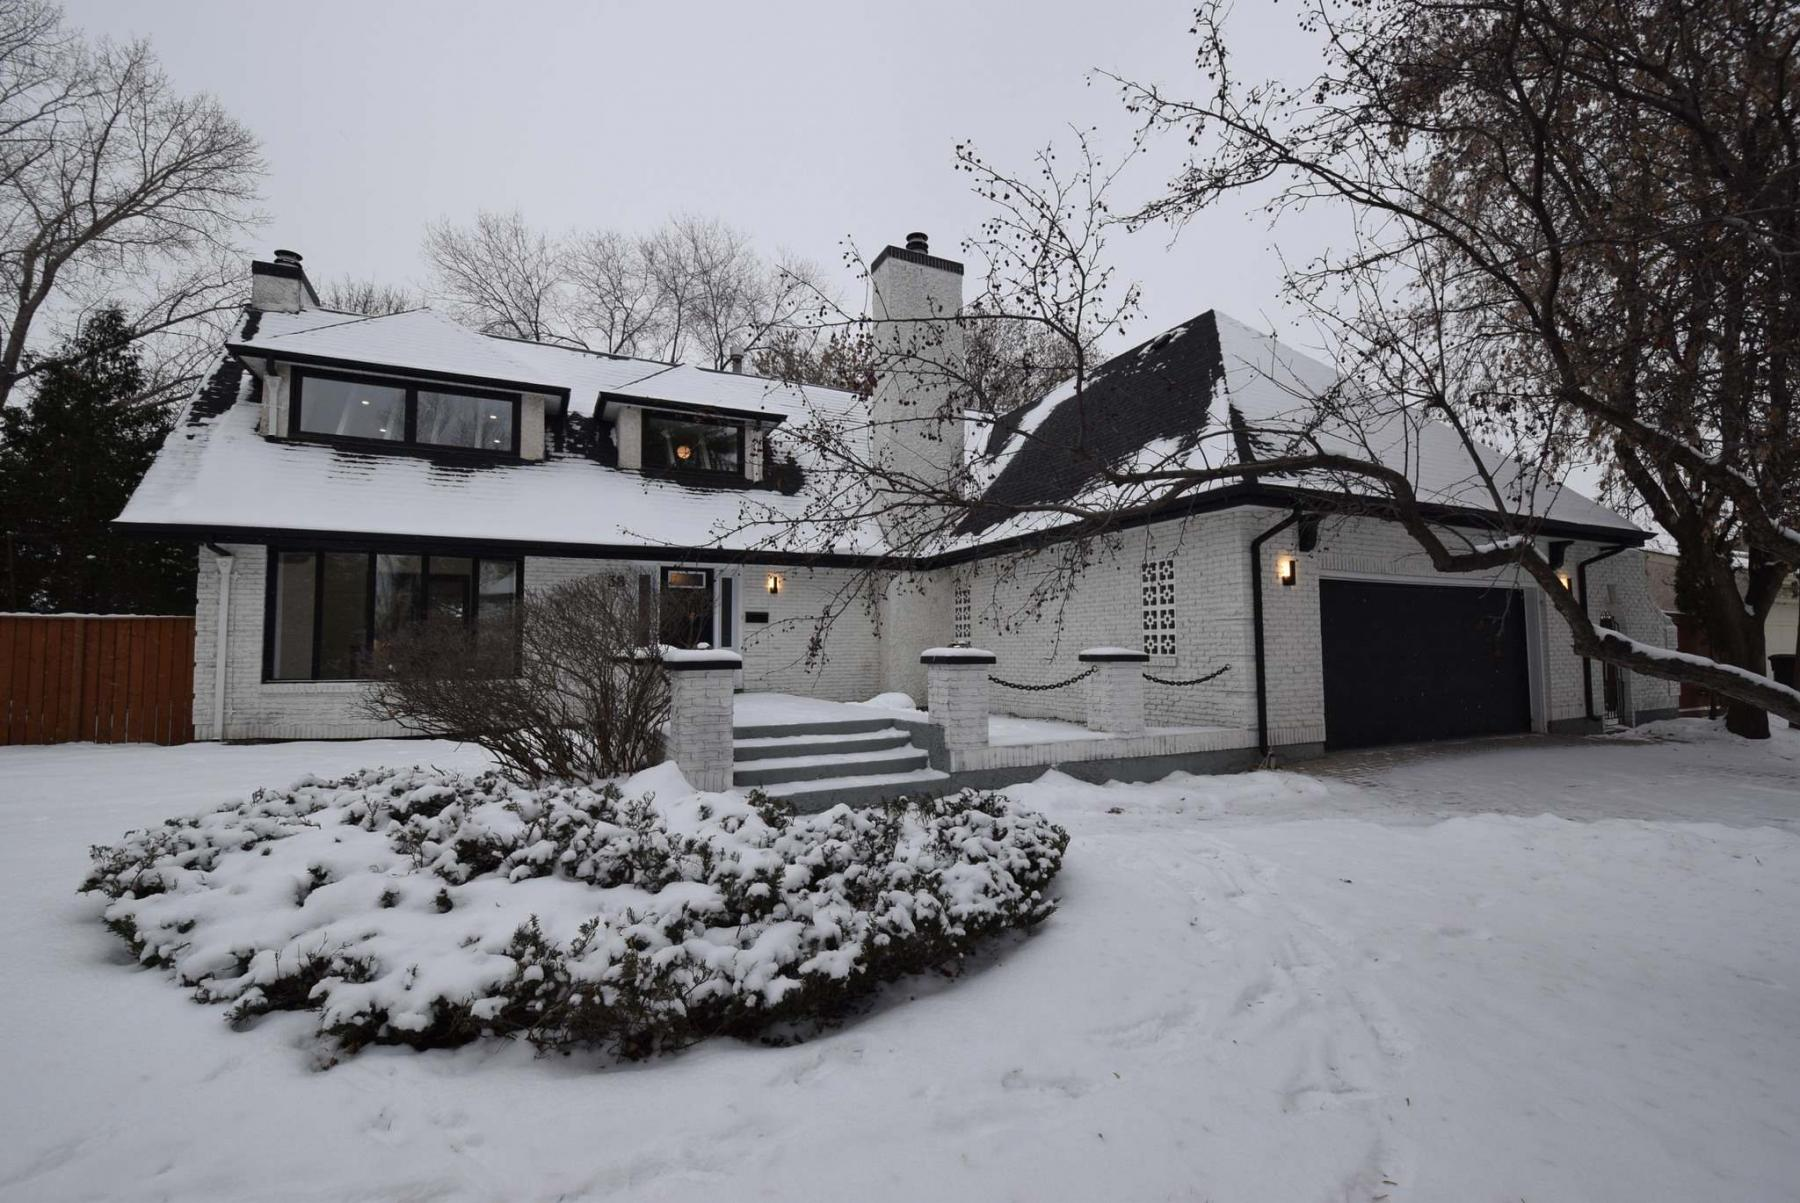 <p>Todd Lewys / Winnipeg Free Press</p><p>A nine-month renovation transformed this Tuxedo classic from dated to dynamic.</p>